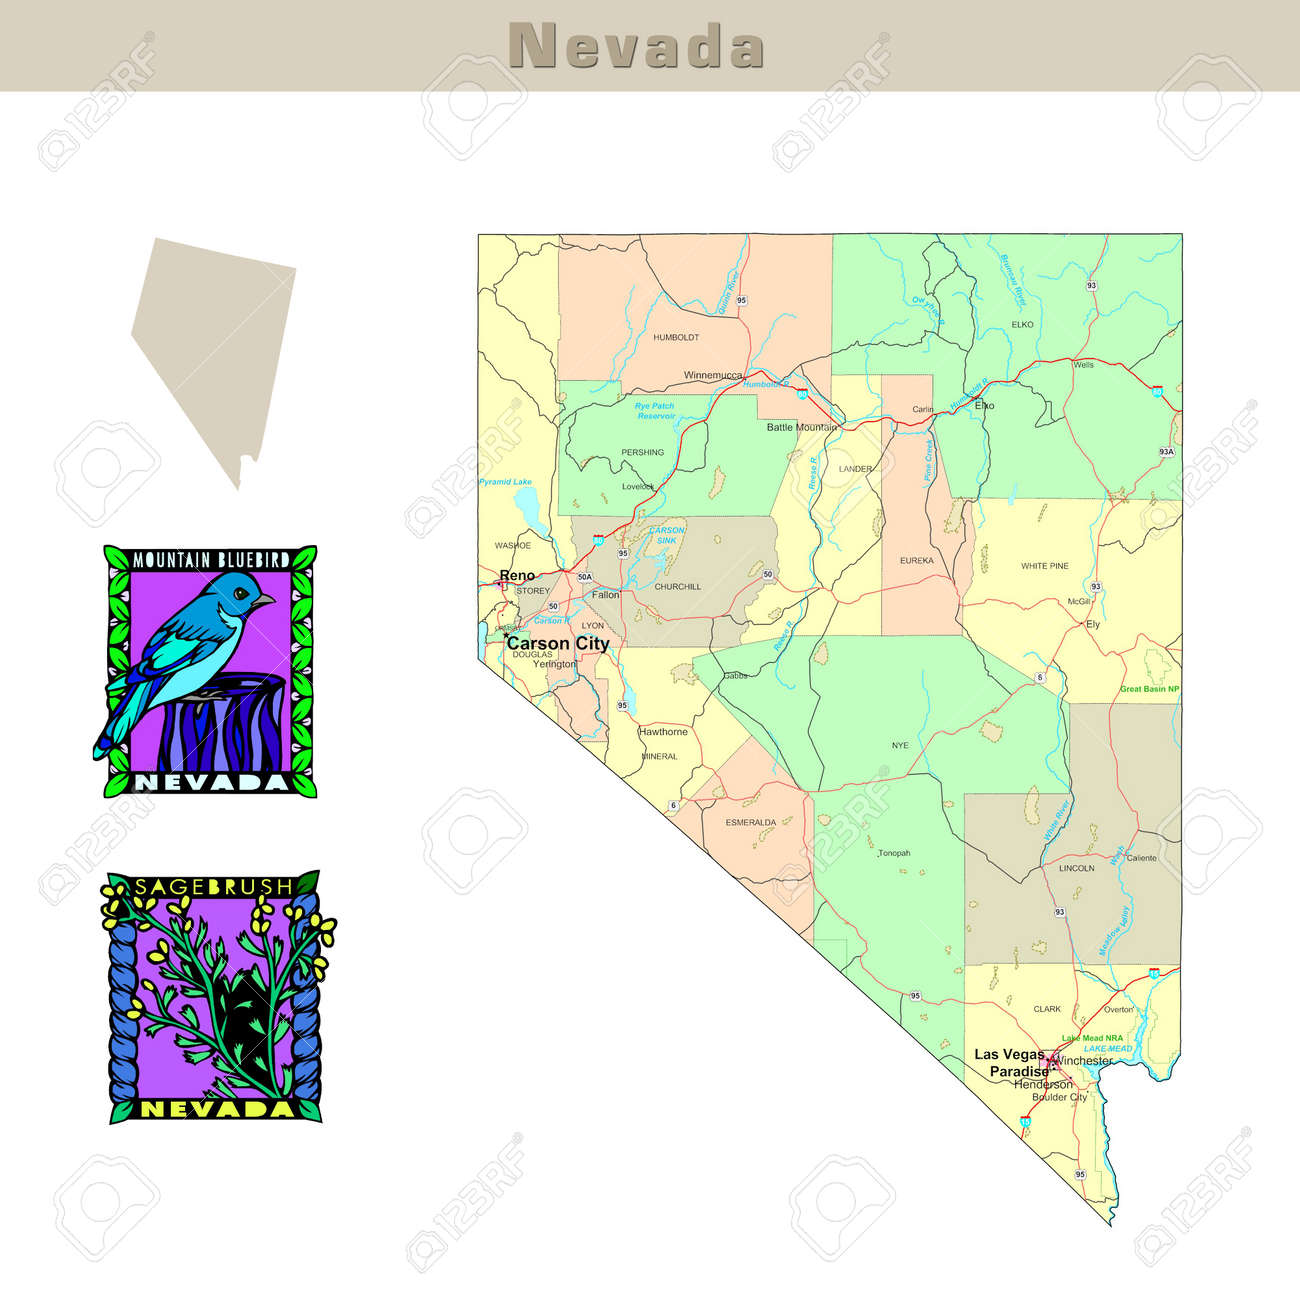 Nevada State On Usa Map Pole Light Switch Wiring Diagram - Us map nevada